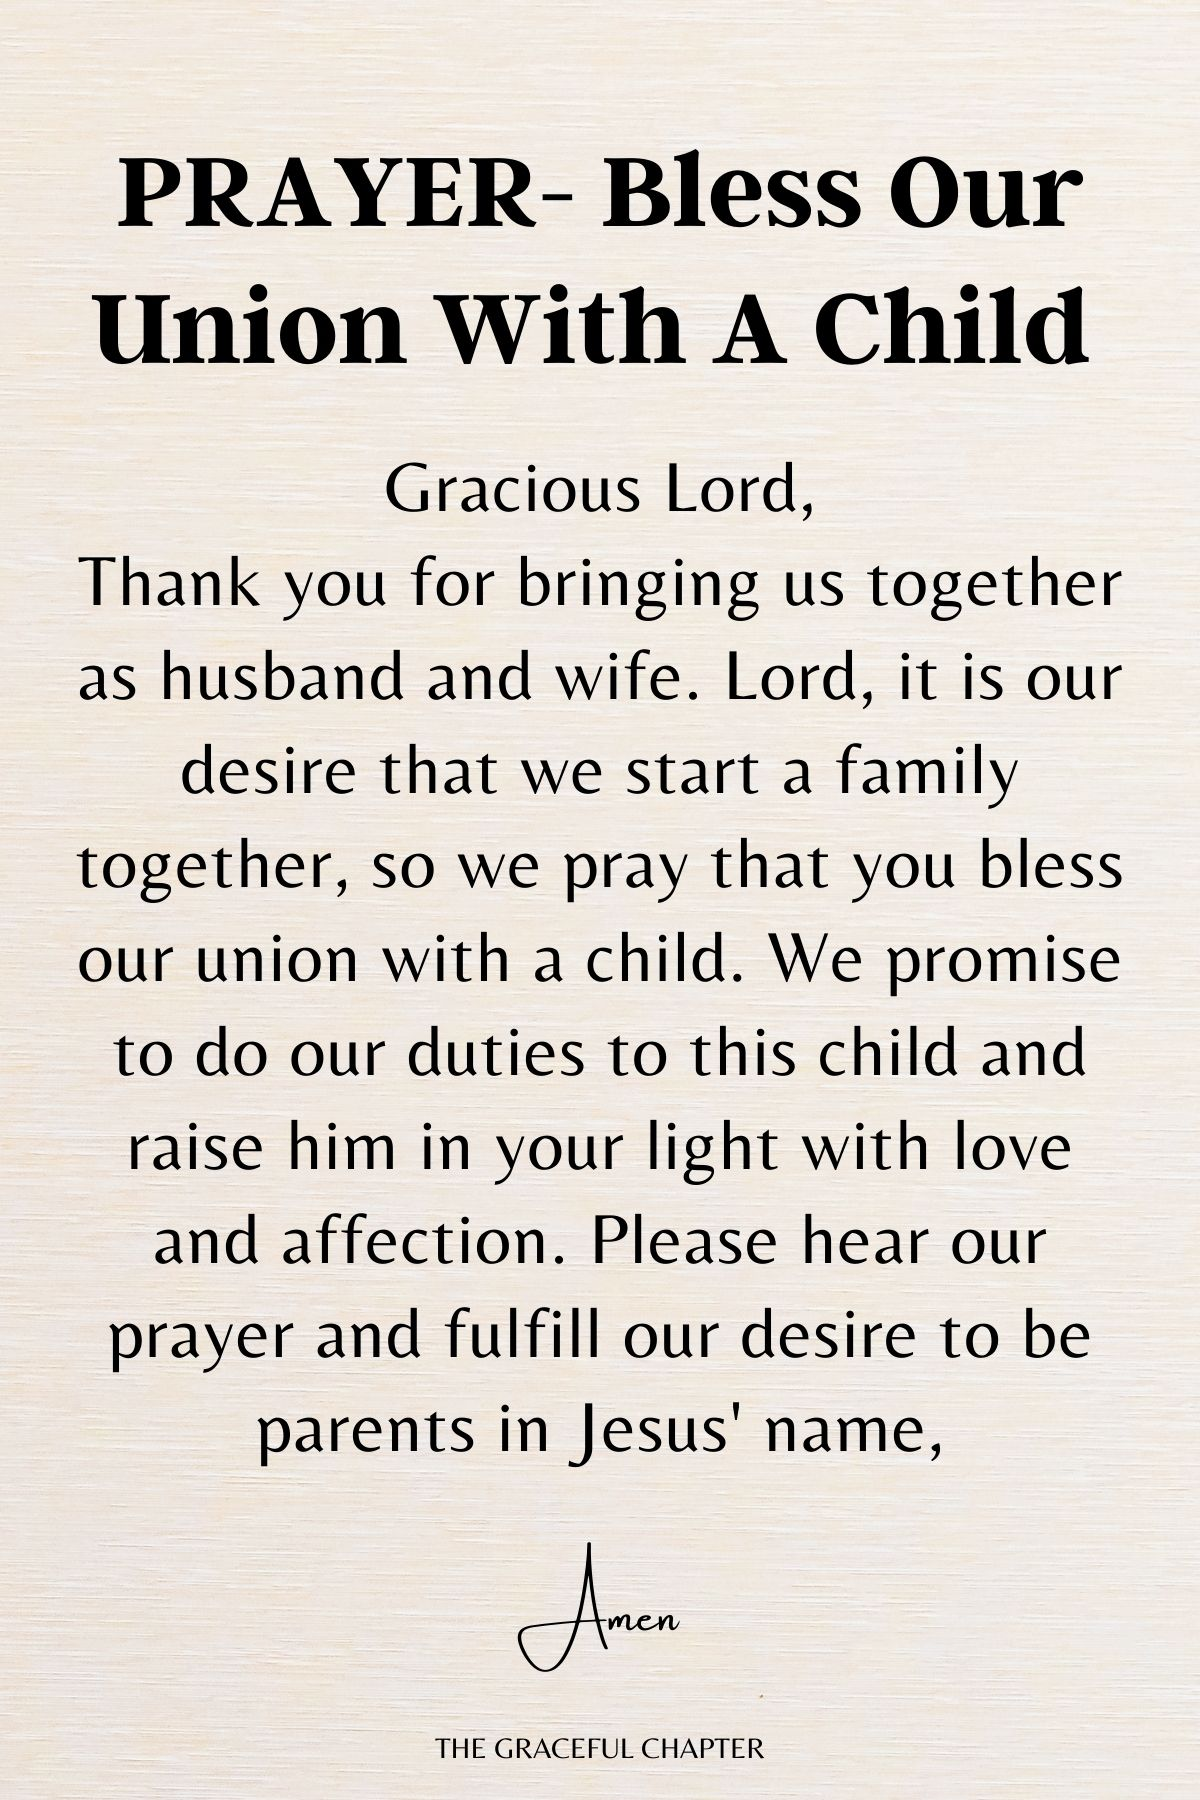 Bless our union with a child